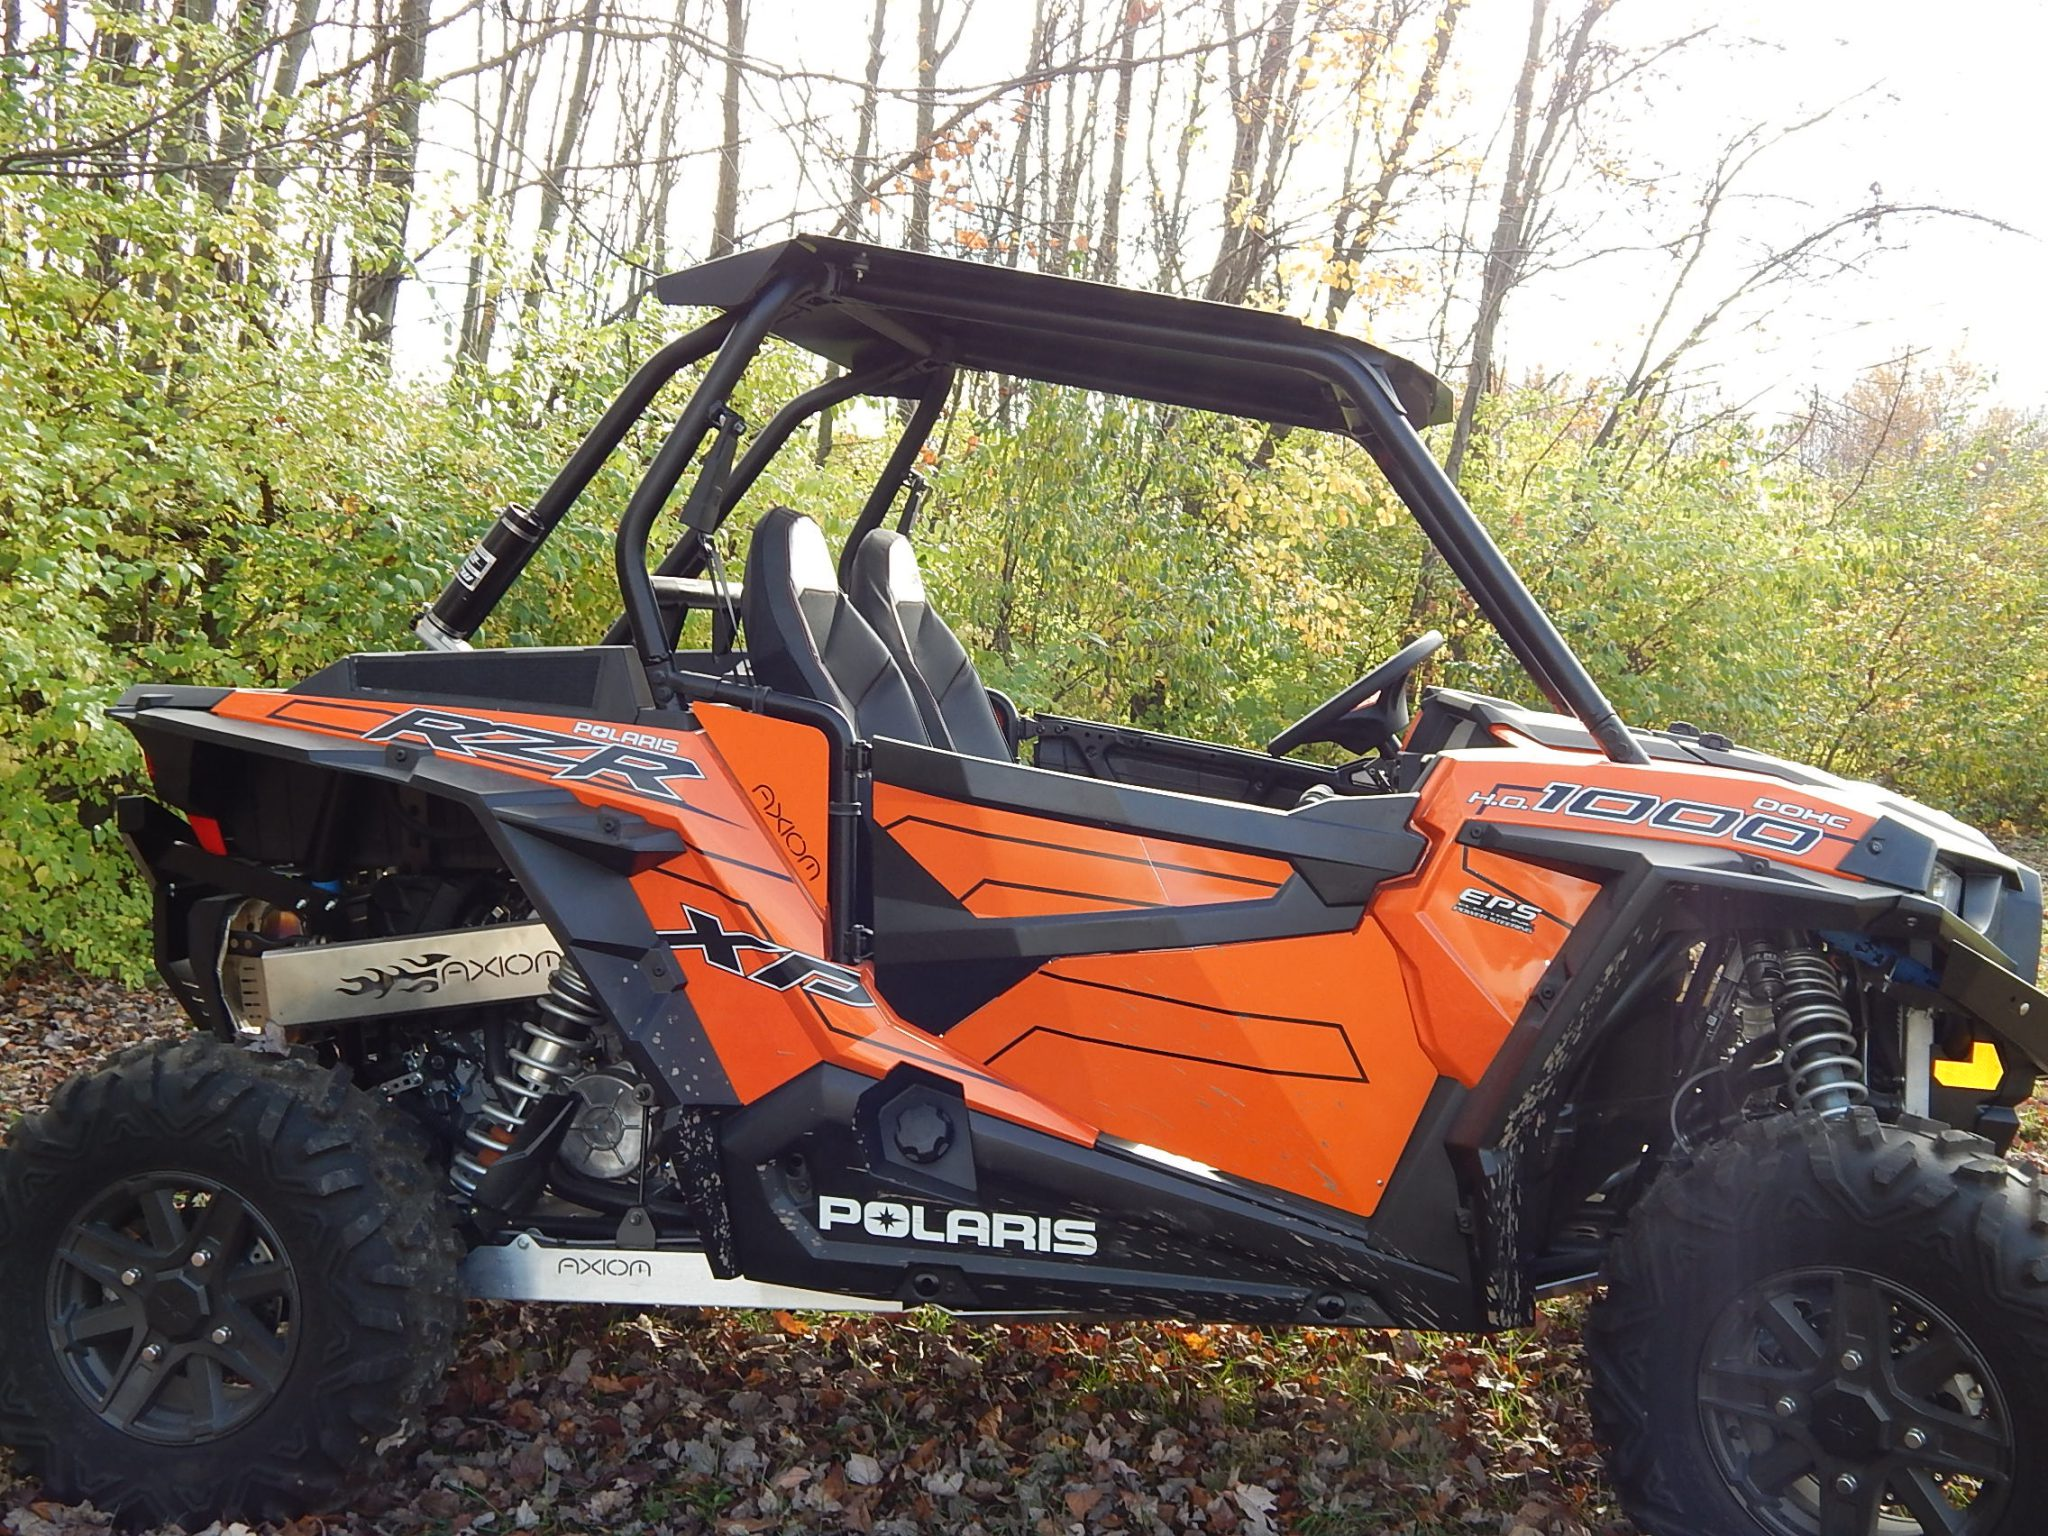 Axiom Roof Low Boy 2 Seater Polaris Rzr Xp Turbo